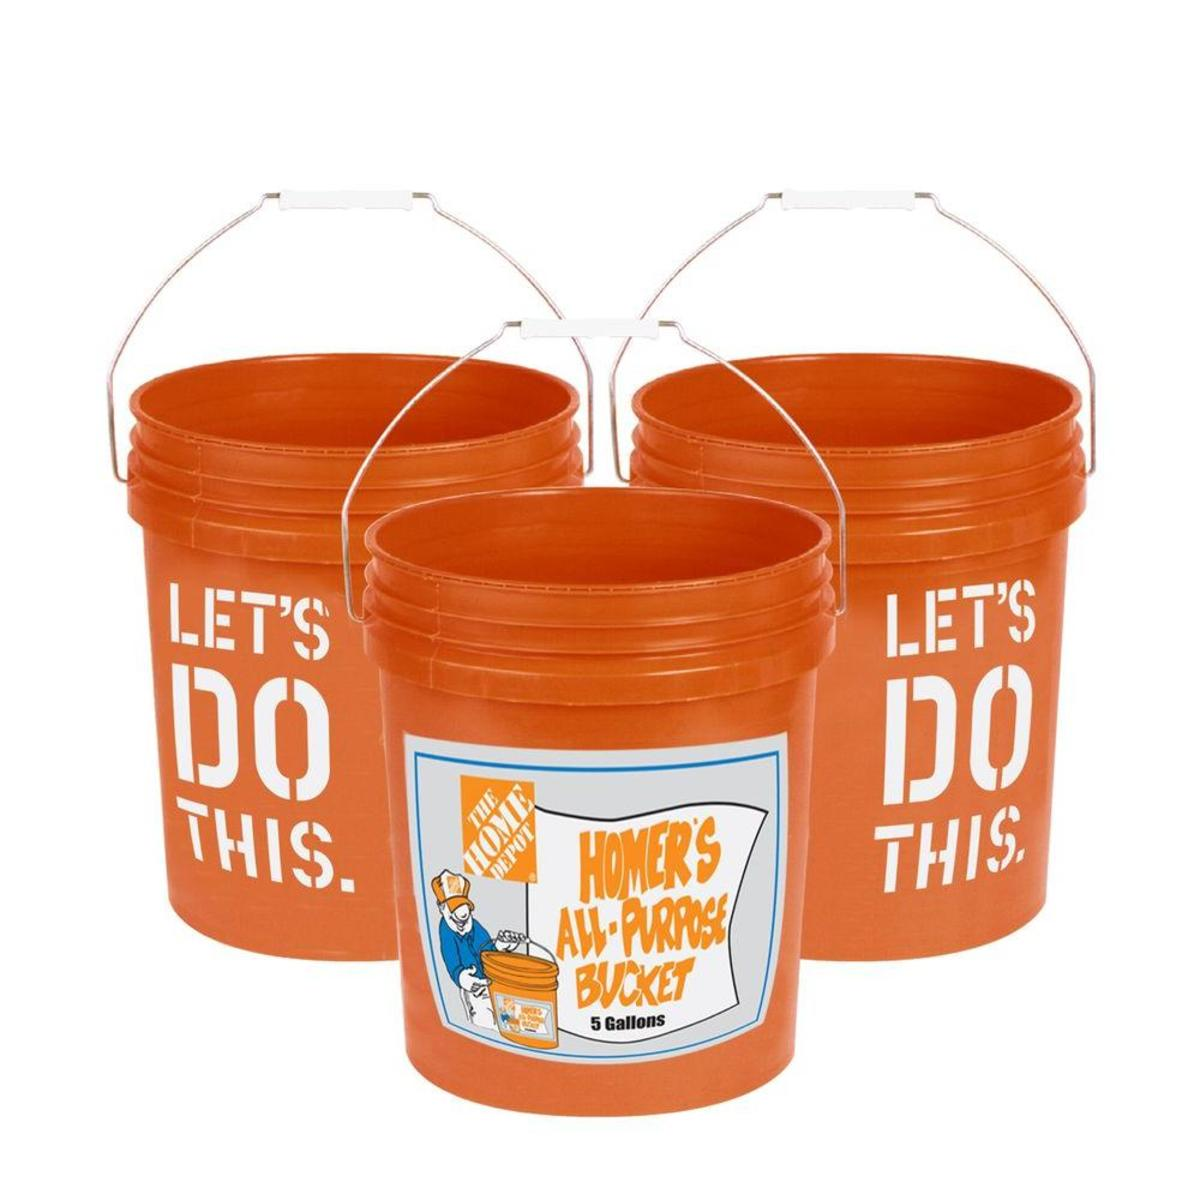 How to Use Gift Buckets Instead of Gift Bags